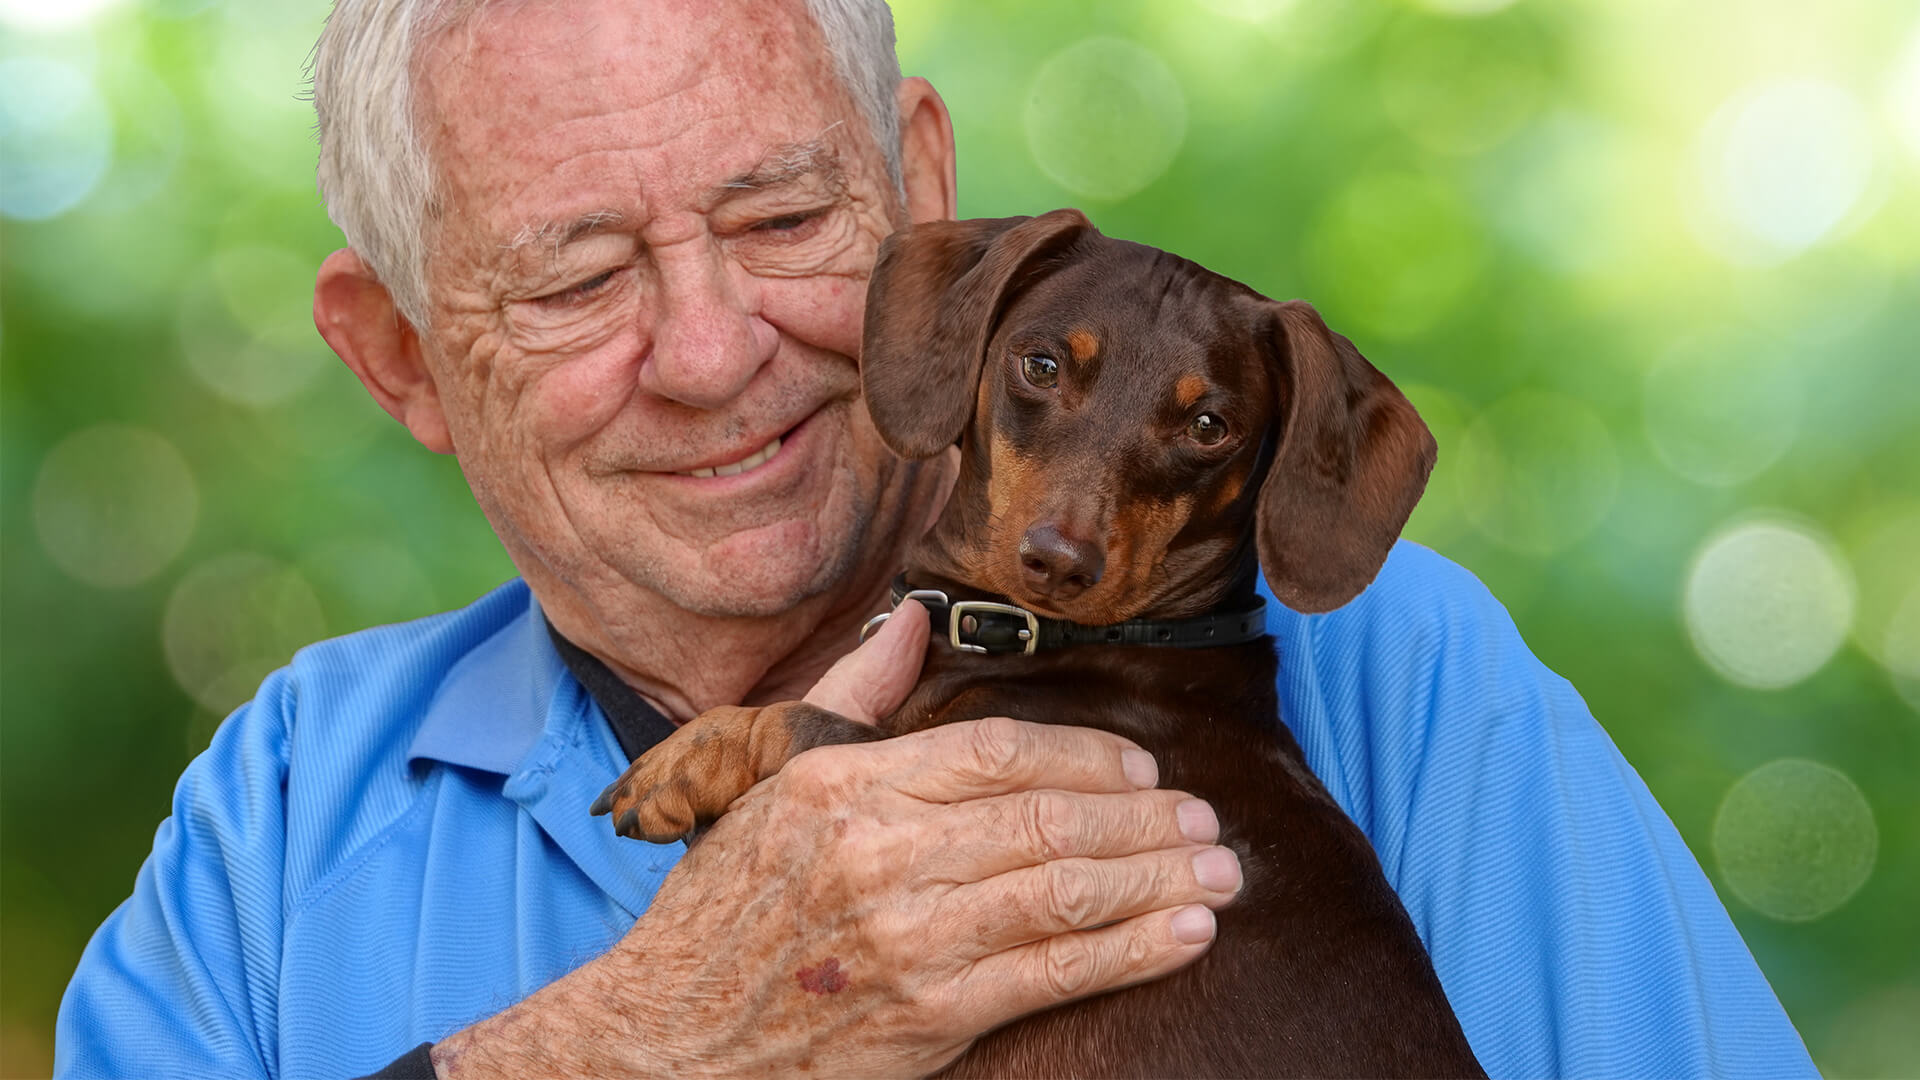 Elderly man and dog